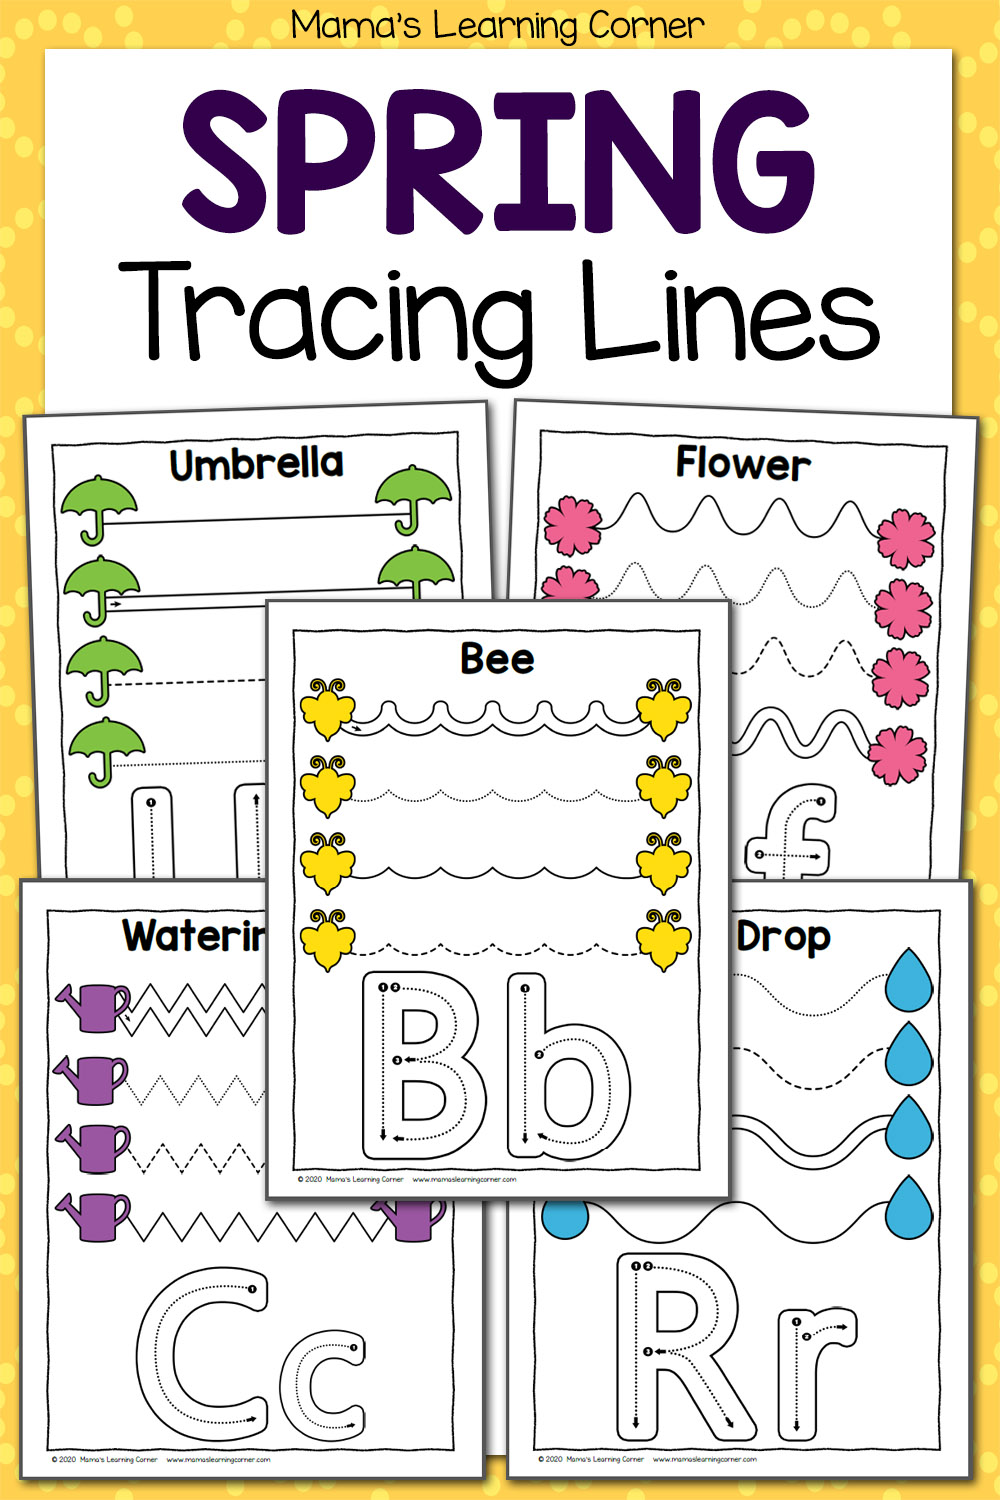 - Spring Tracing Worksheets For Preschool - Mamas Learning Corner